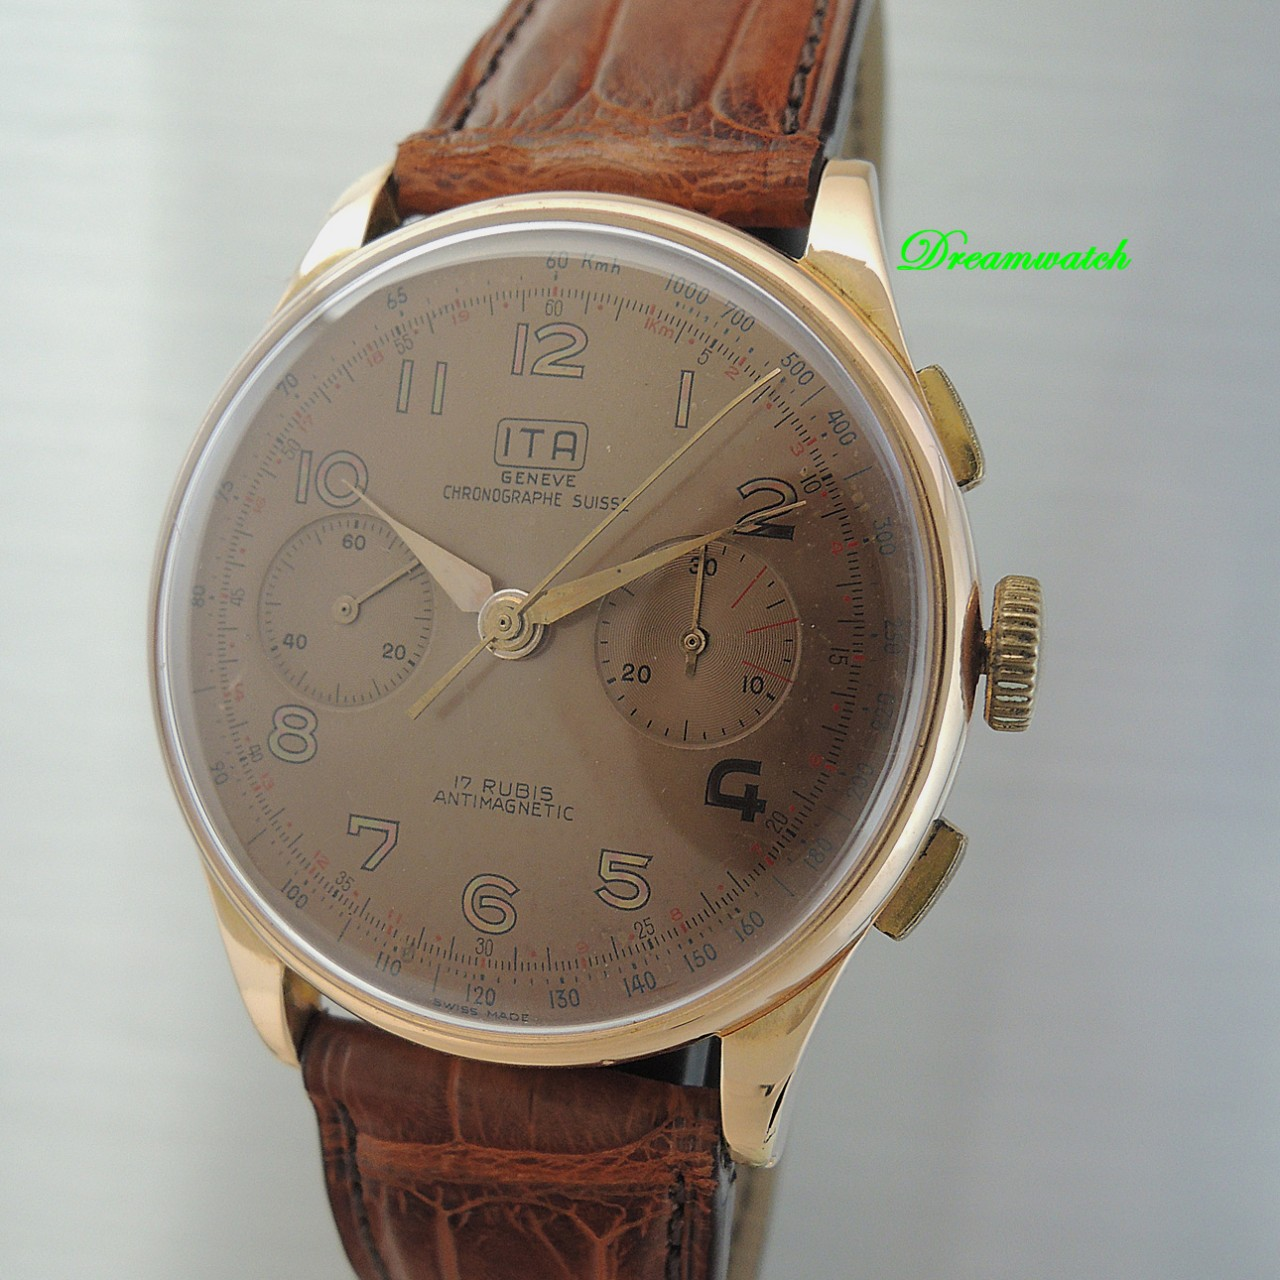 ITA Chronograph 18 k Rose Gold